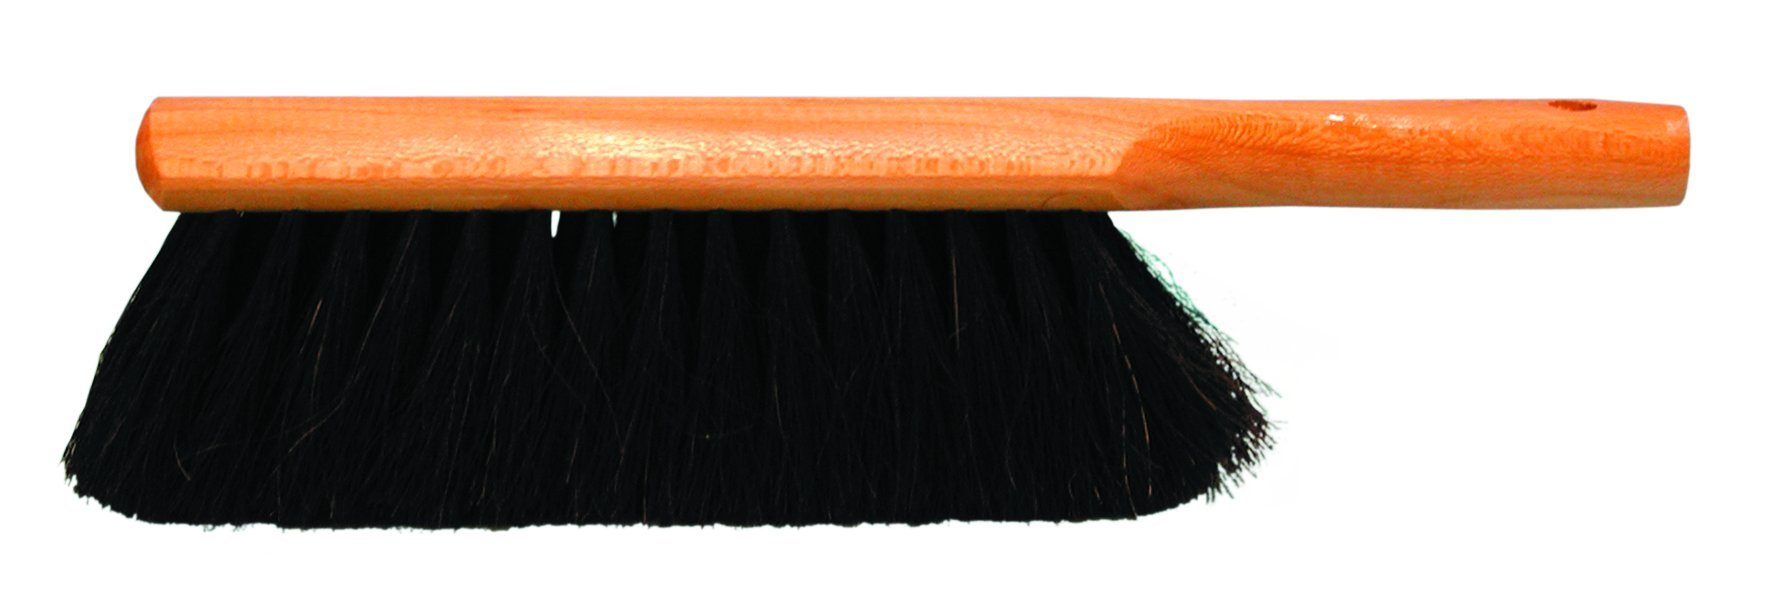 Magnolia Brush 54 Horsehair Beaver-Tail Counter Duster, 2-1/2'' Trim, 13-1/2'' Overall Length, Black (Case of 12)